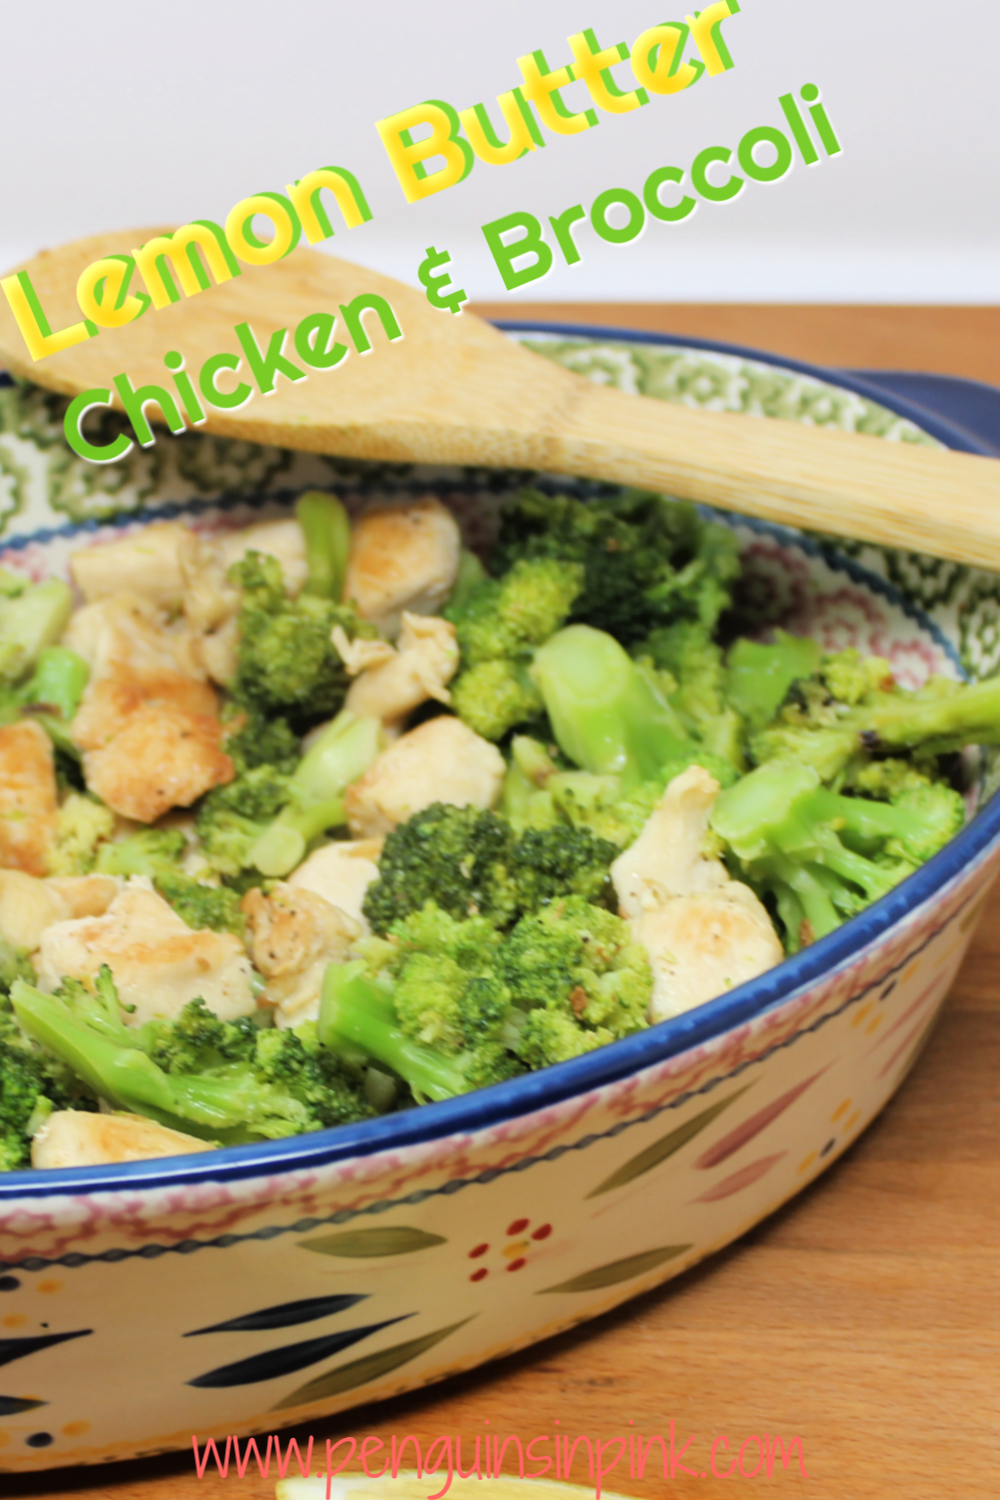 Lemon Butter Chicken and Broccoli is a quick and easy flavor packed dinner. 5 kitchen staples make a mouth-watering, delicious meal in less than 30 minutes.